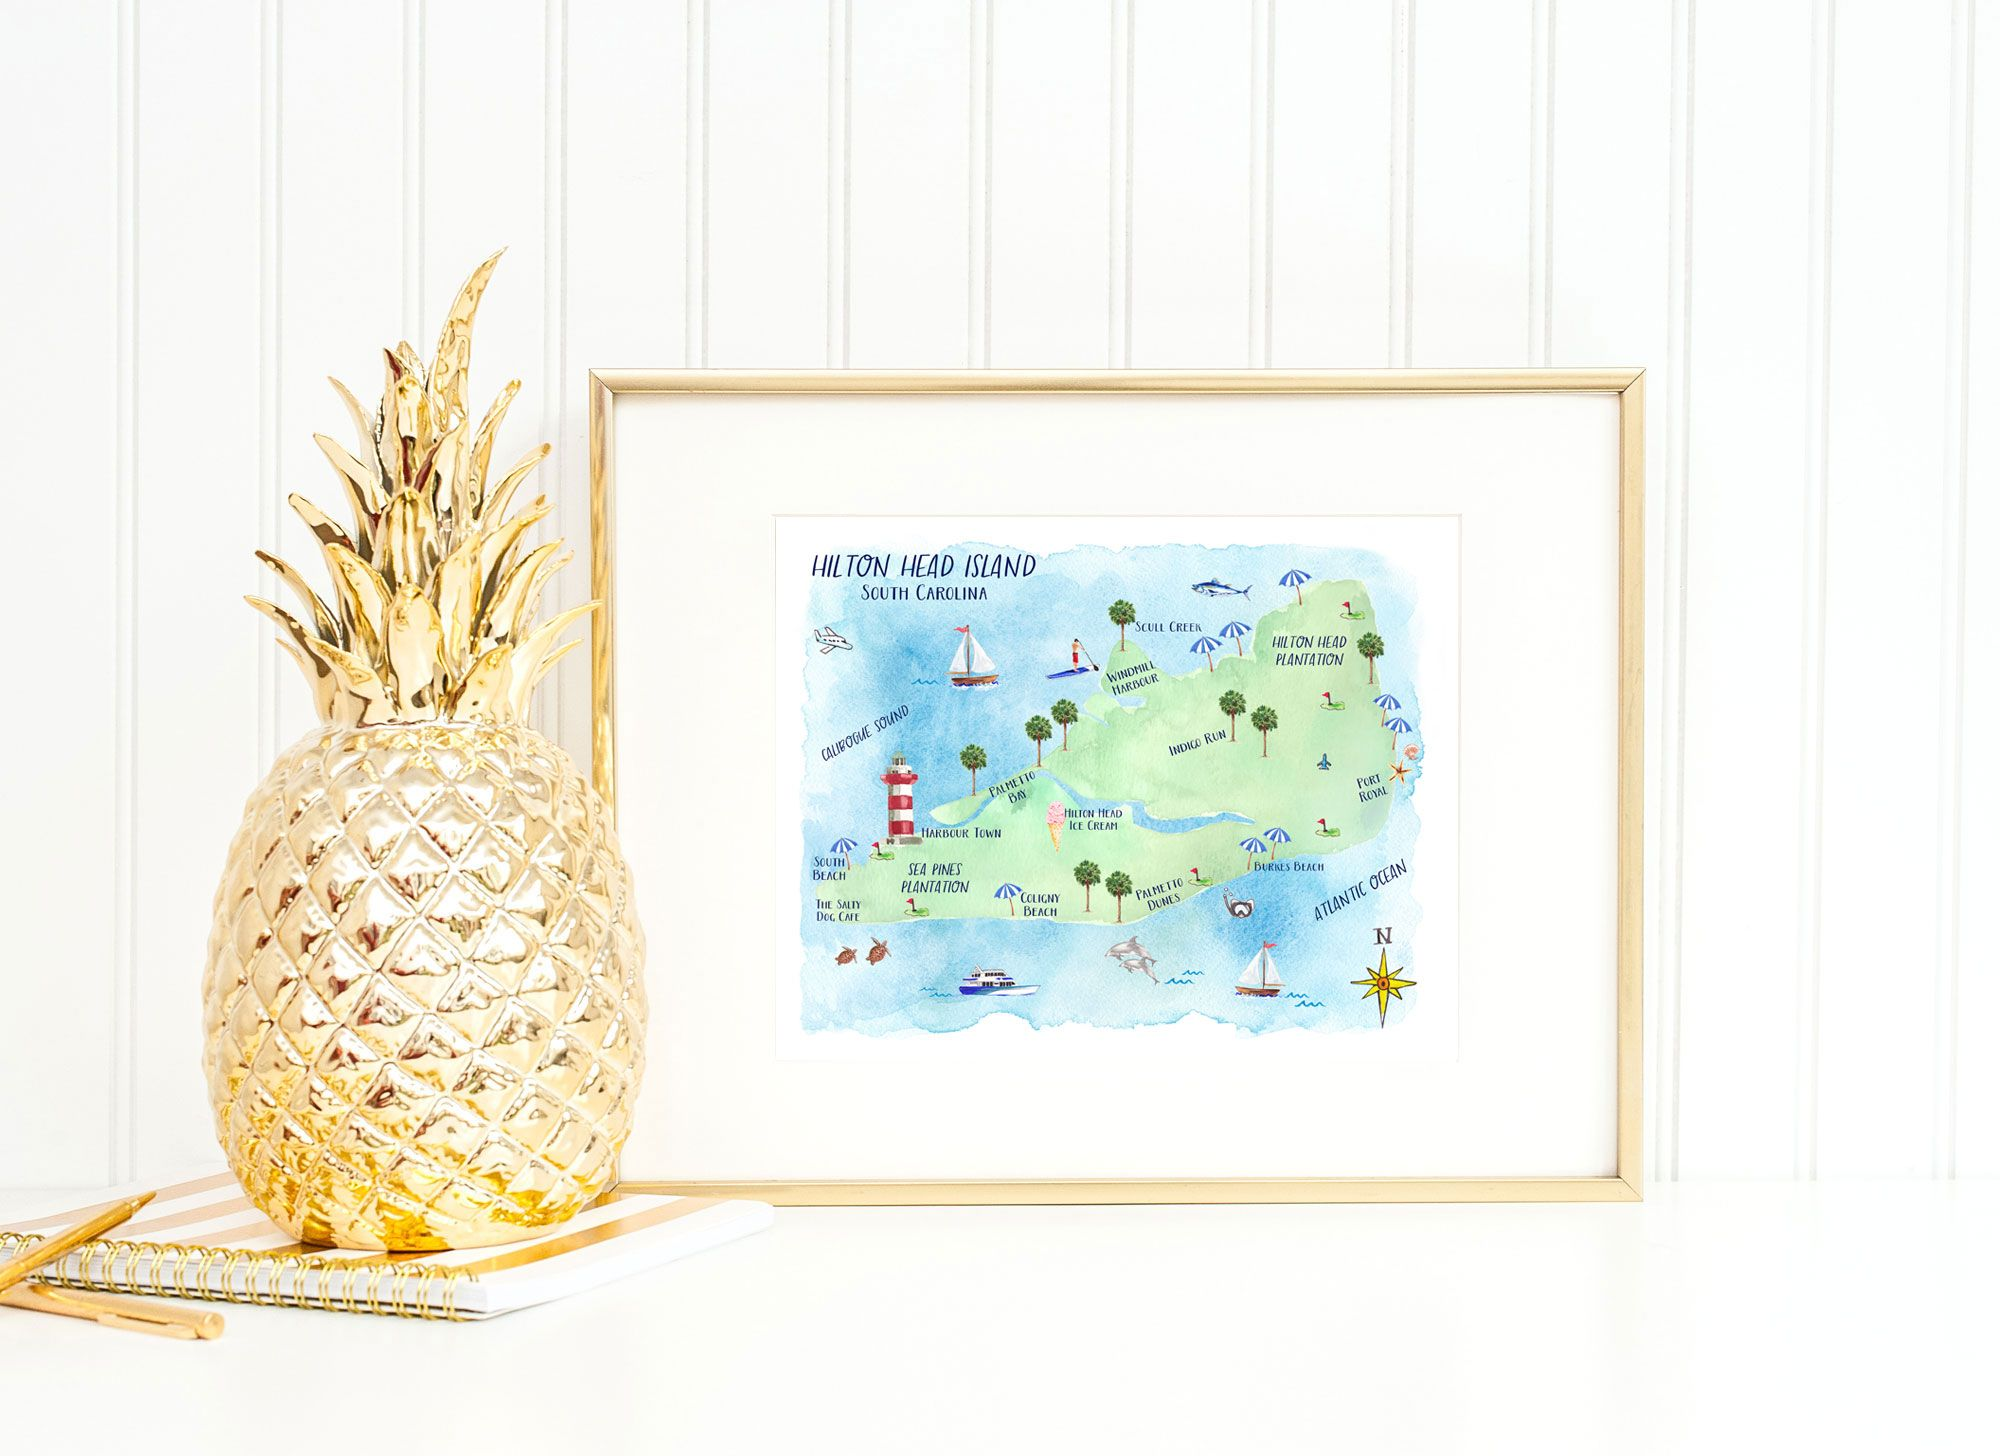 Hand Painted Watercolor Town Map Of Hilton Head Island By Artist Michelle Mospens Map Art Print Map Wall Art Hilton Head Island Map